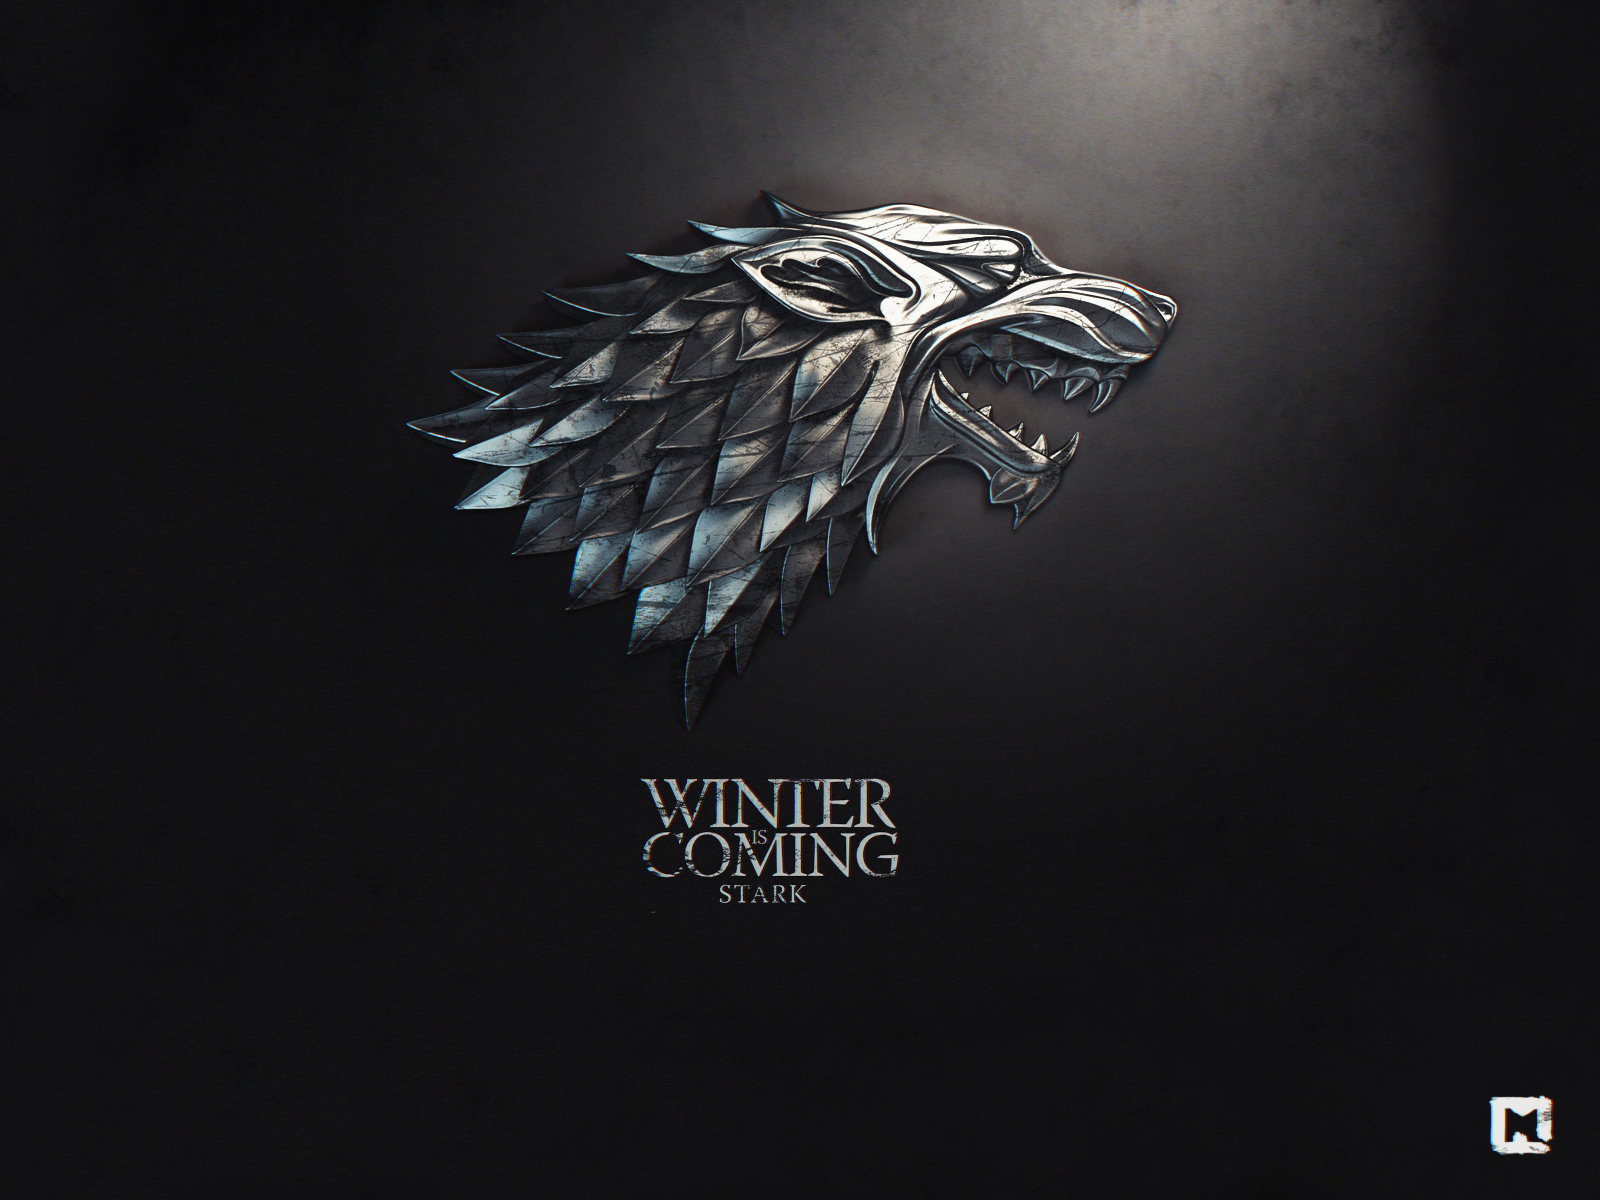 game of thrones wallpaper winter is coming covers heat